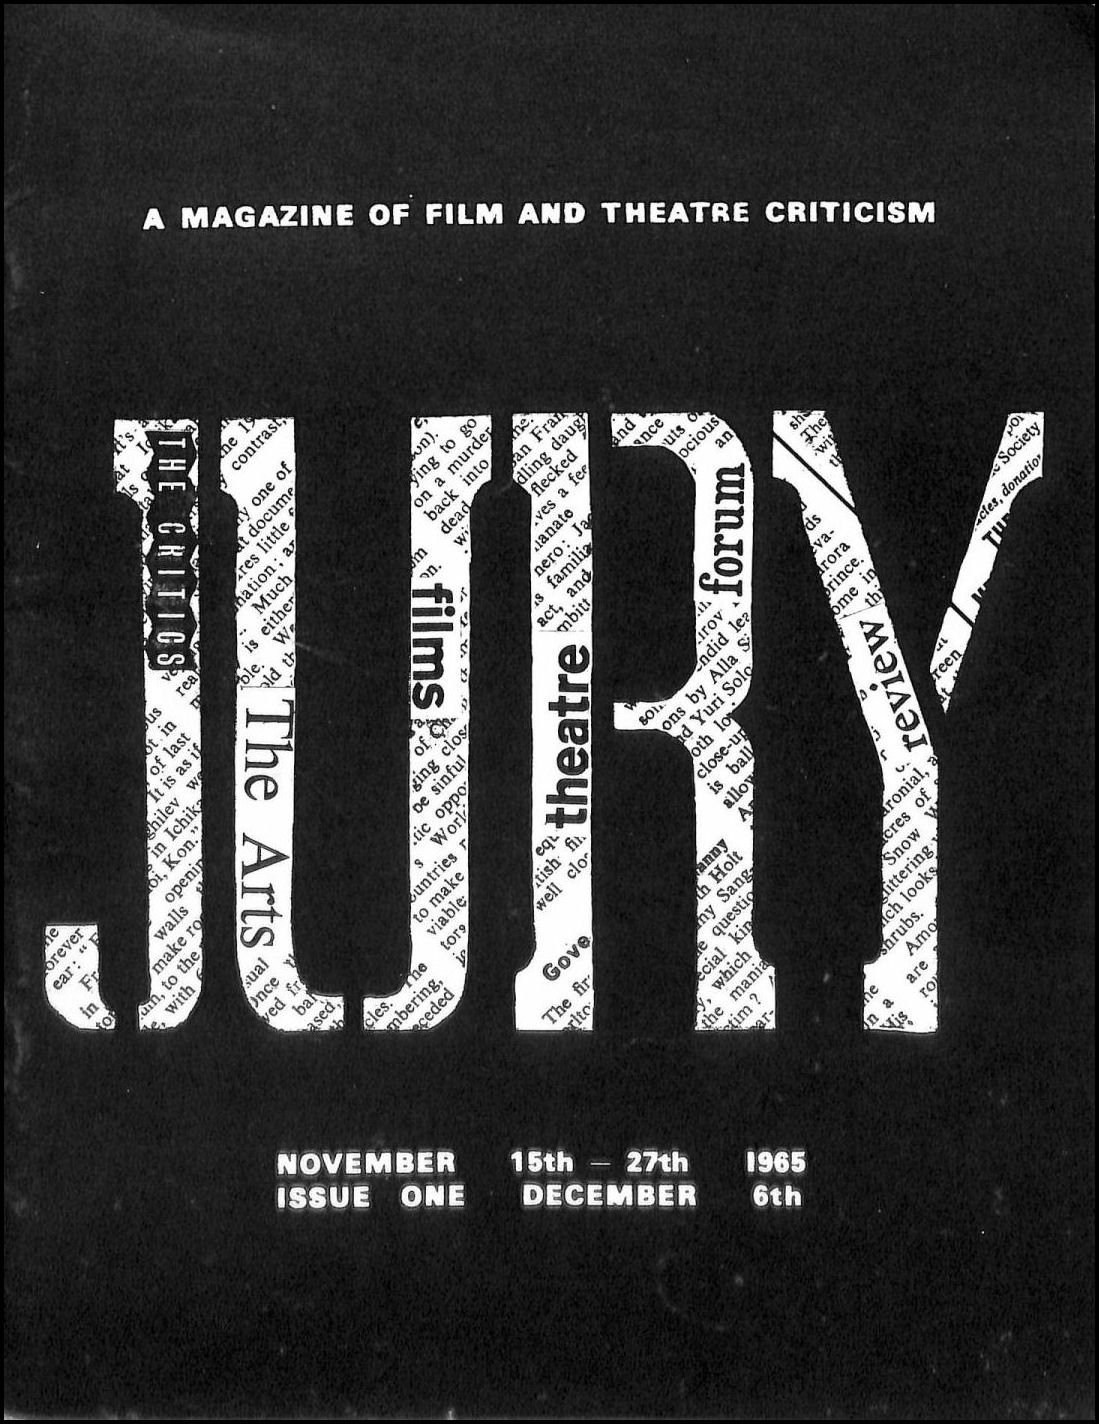 Image for Jury, A Magazine of Film and Theatre Criticism November 15th-27th 1965